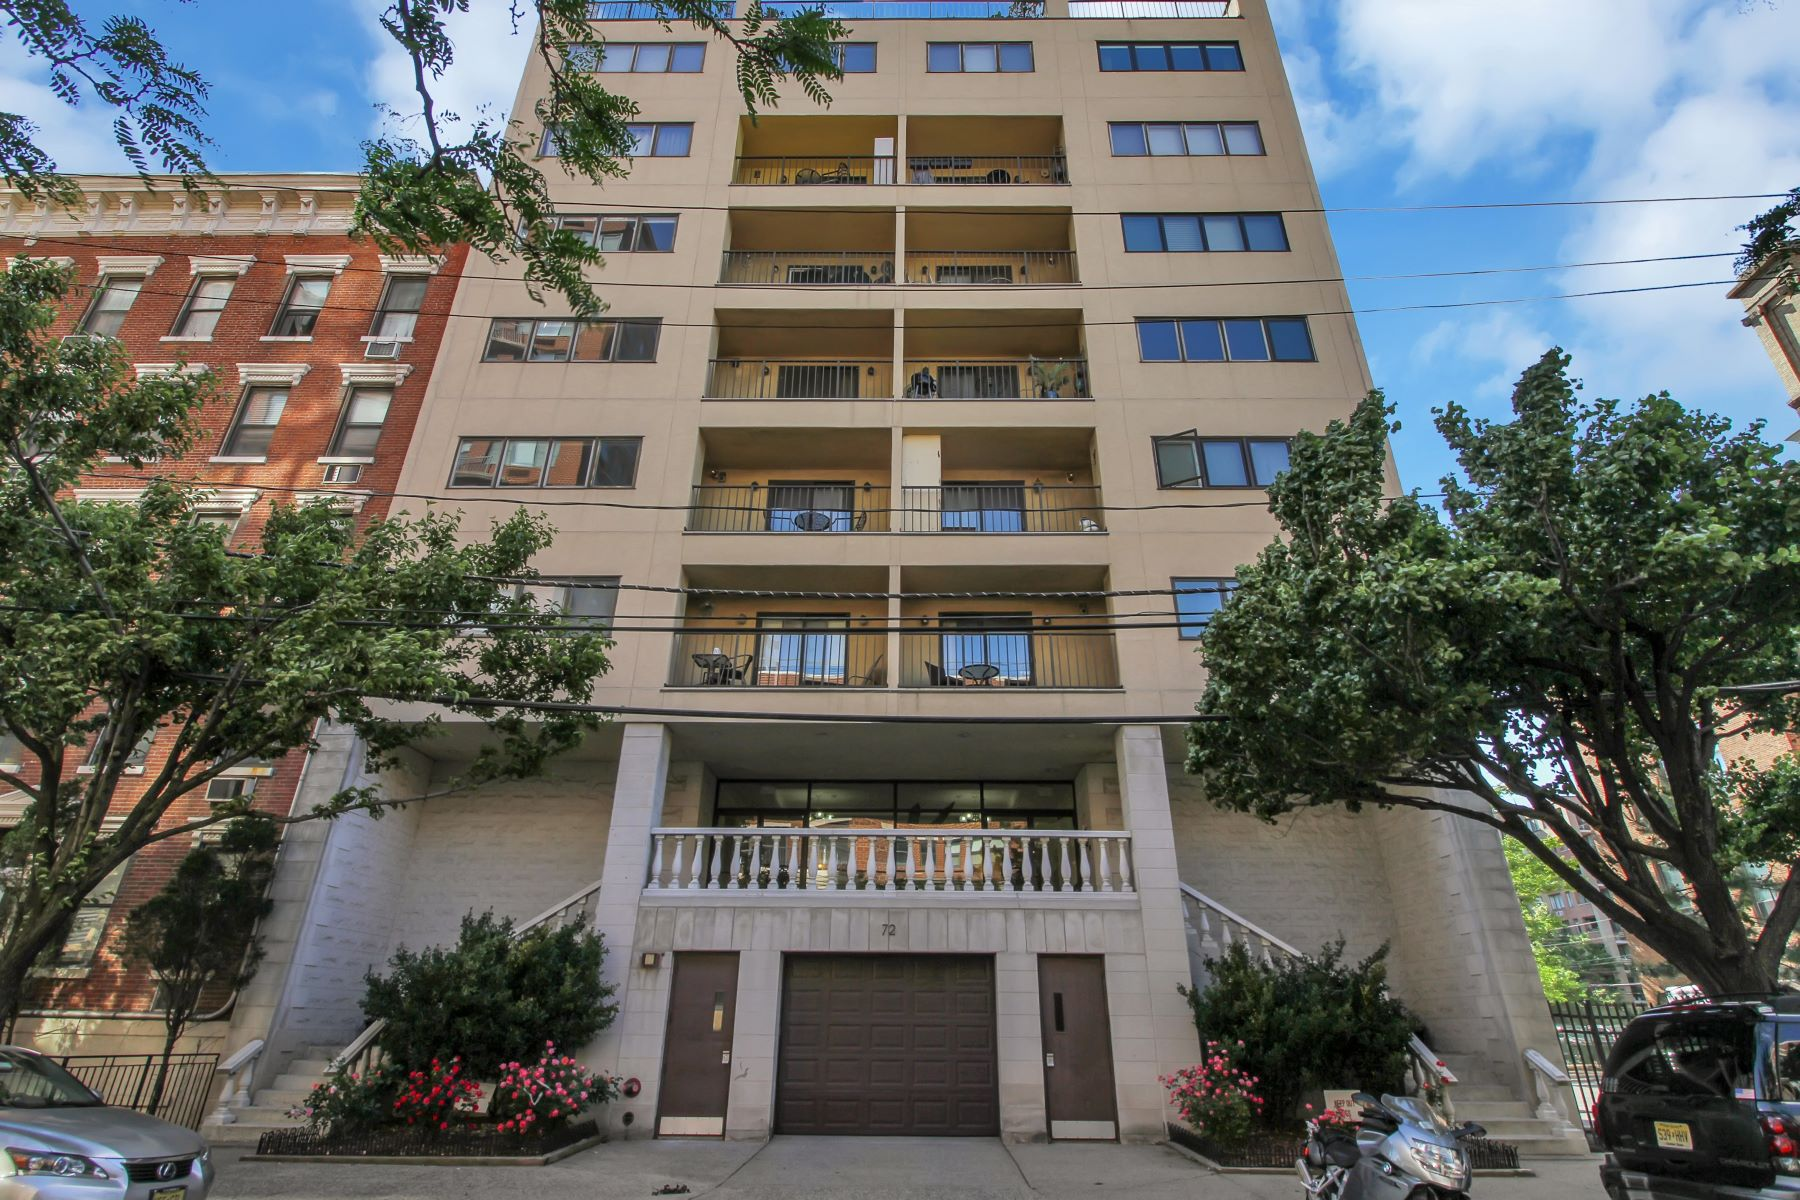 Condominium for Sale at Downtown Park Ave Two Bedroom Home! 72 Park Ave #2B Hoboken, New Jersey 07030 United States